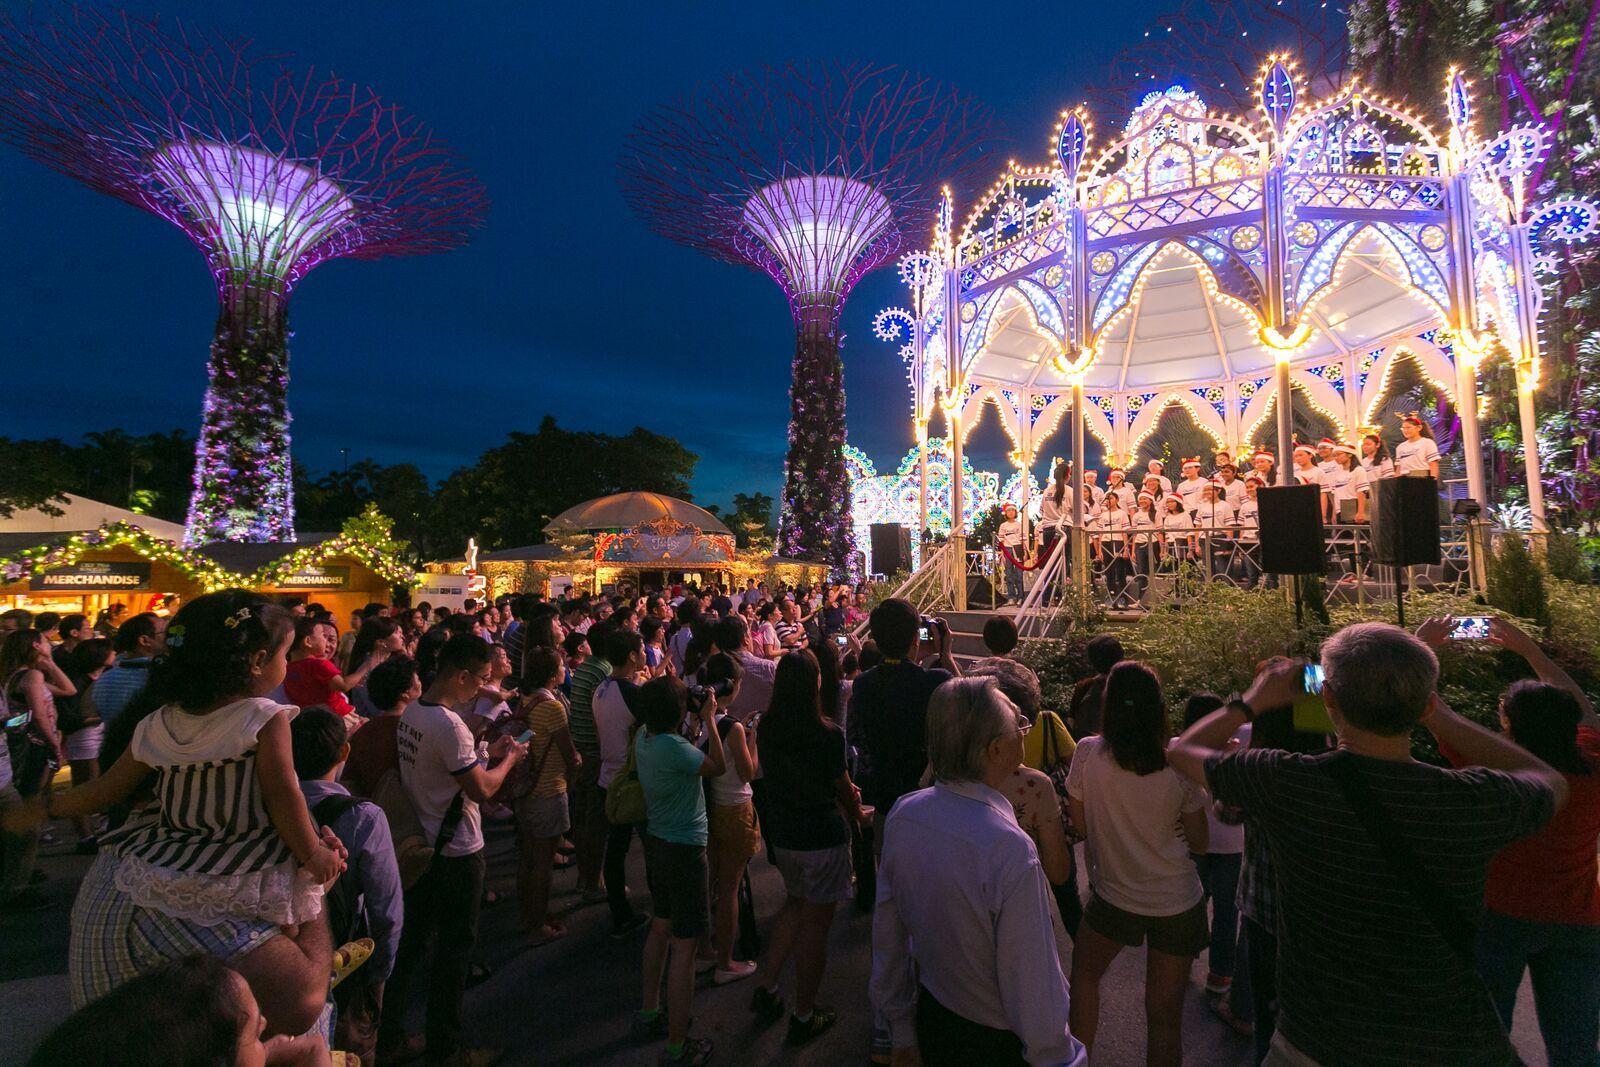 starry starry nightocbc light and sound show gardens by the bay photos pinterest photography